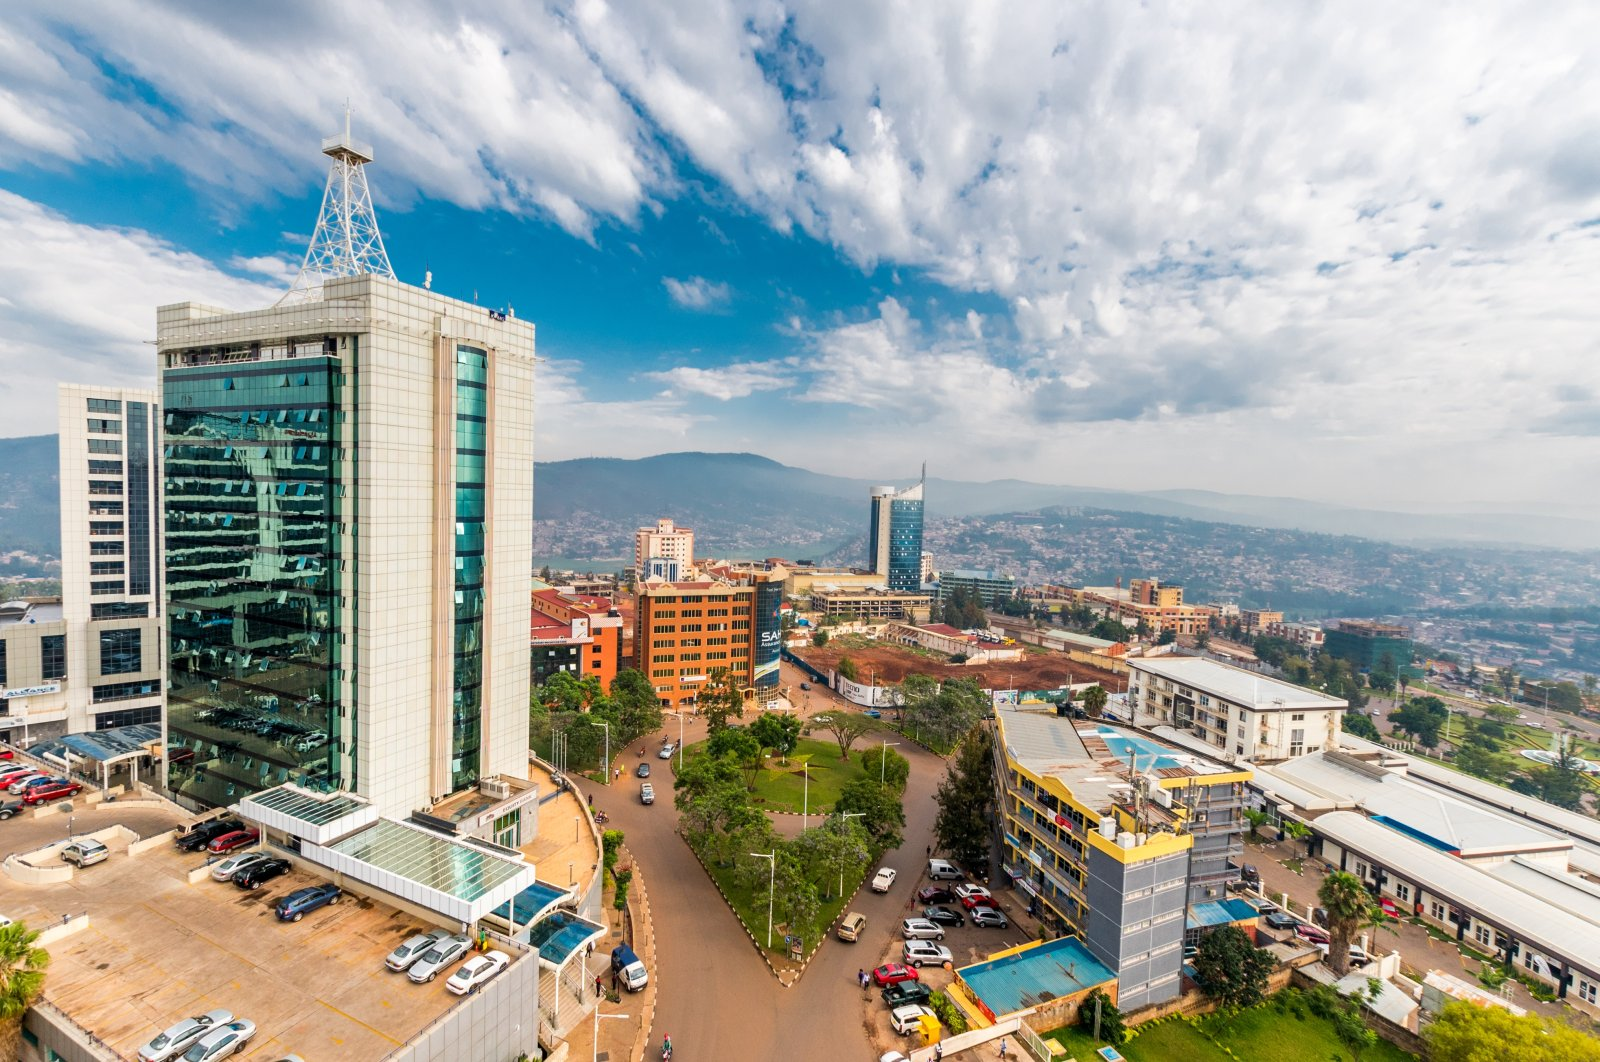 A view looking down on the city center with Pension Plaza in the foreground and Kigali City Tower in the background, Kigali, Rwanda, Sept. 21, 2018. (Shutterstock Photo)